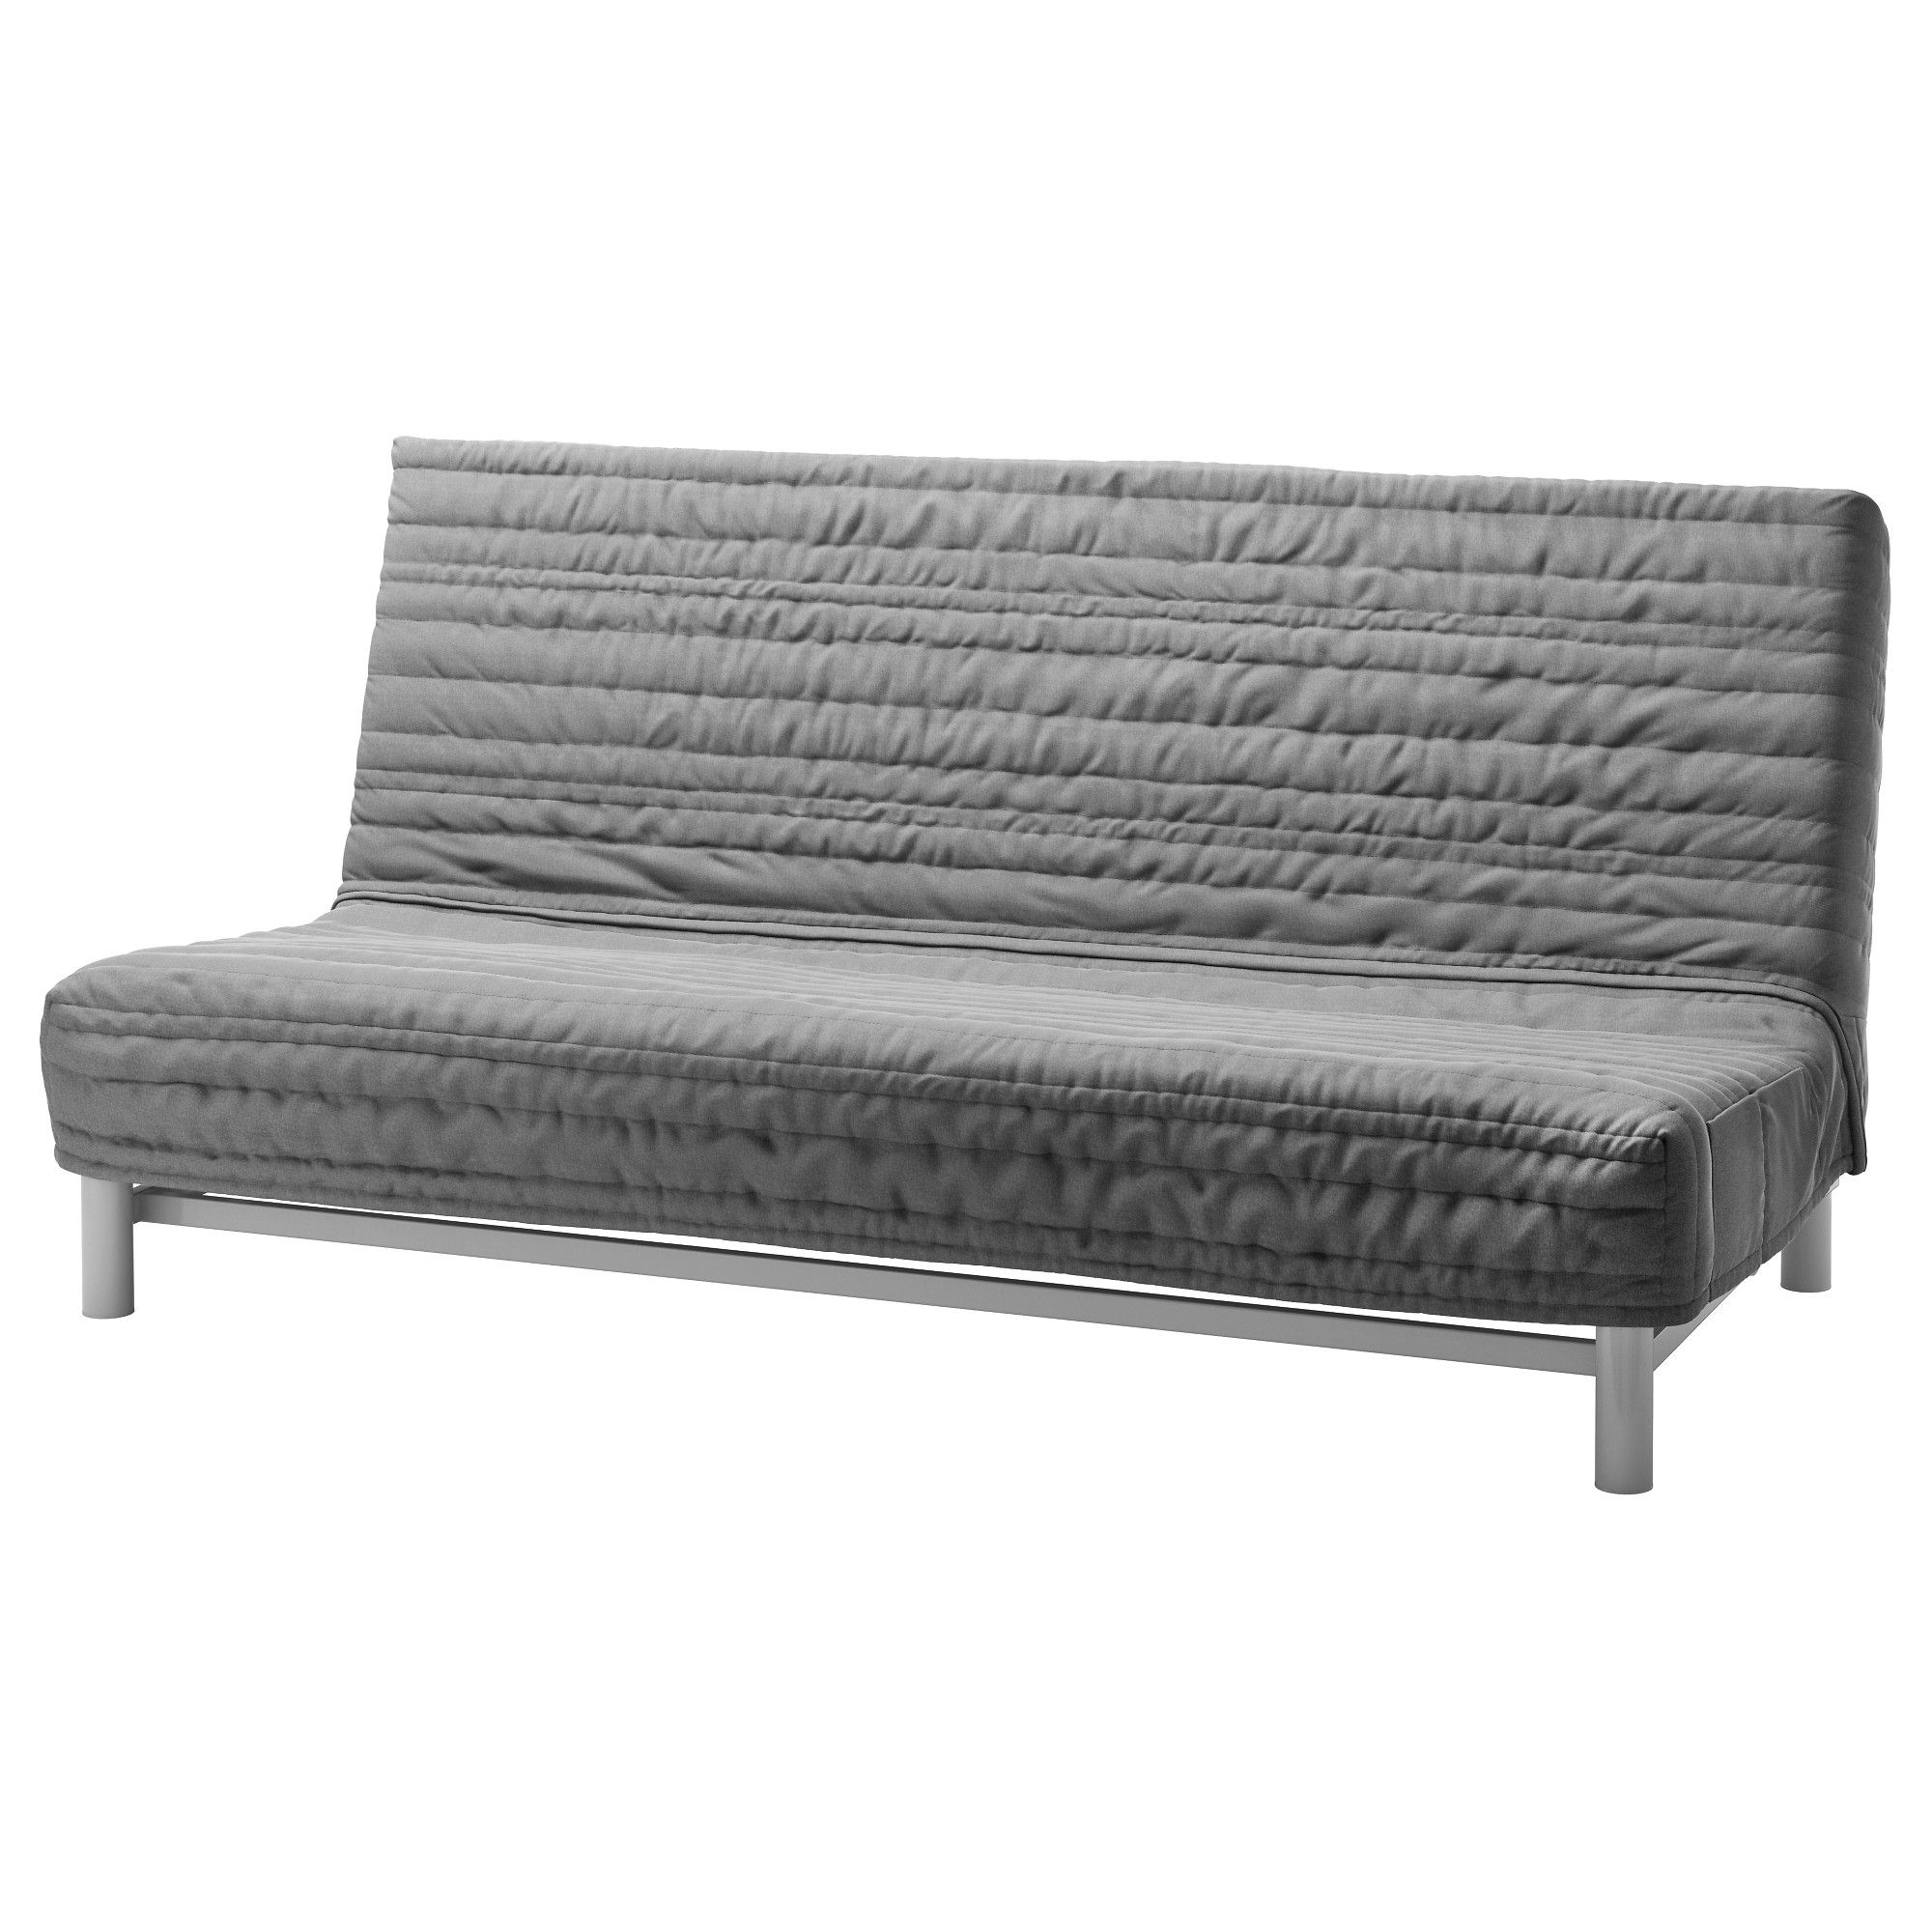 Ikea Beddinge Lövås Sofa Bed Knisa Light Gray Extra Covers